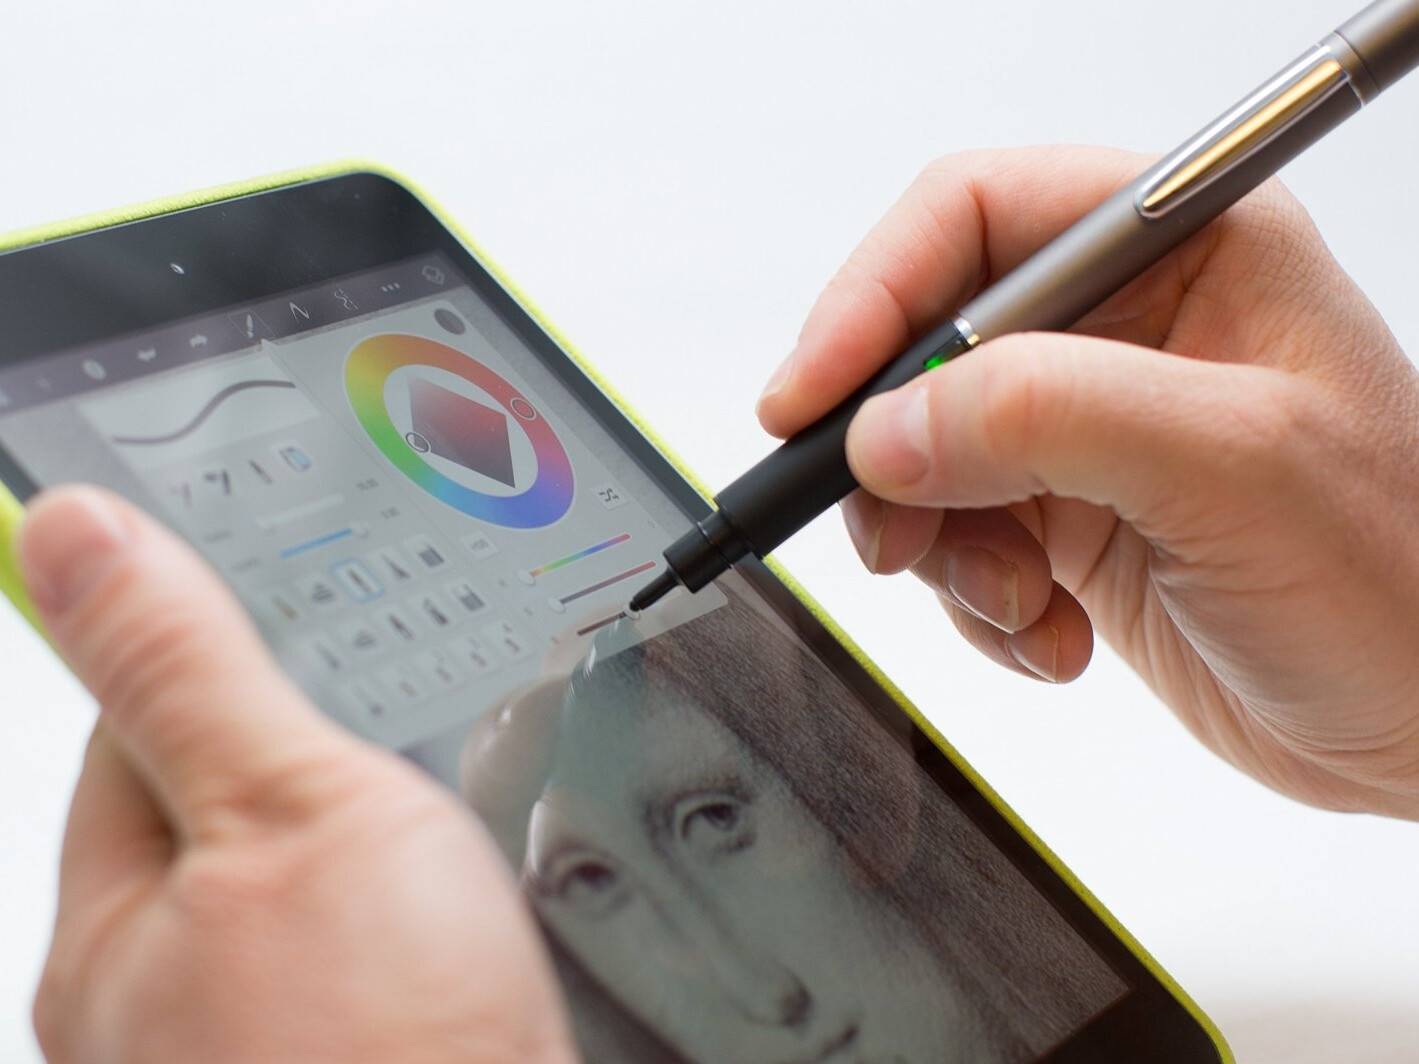 Stylus writing app for android